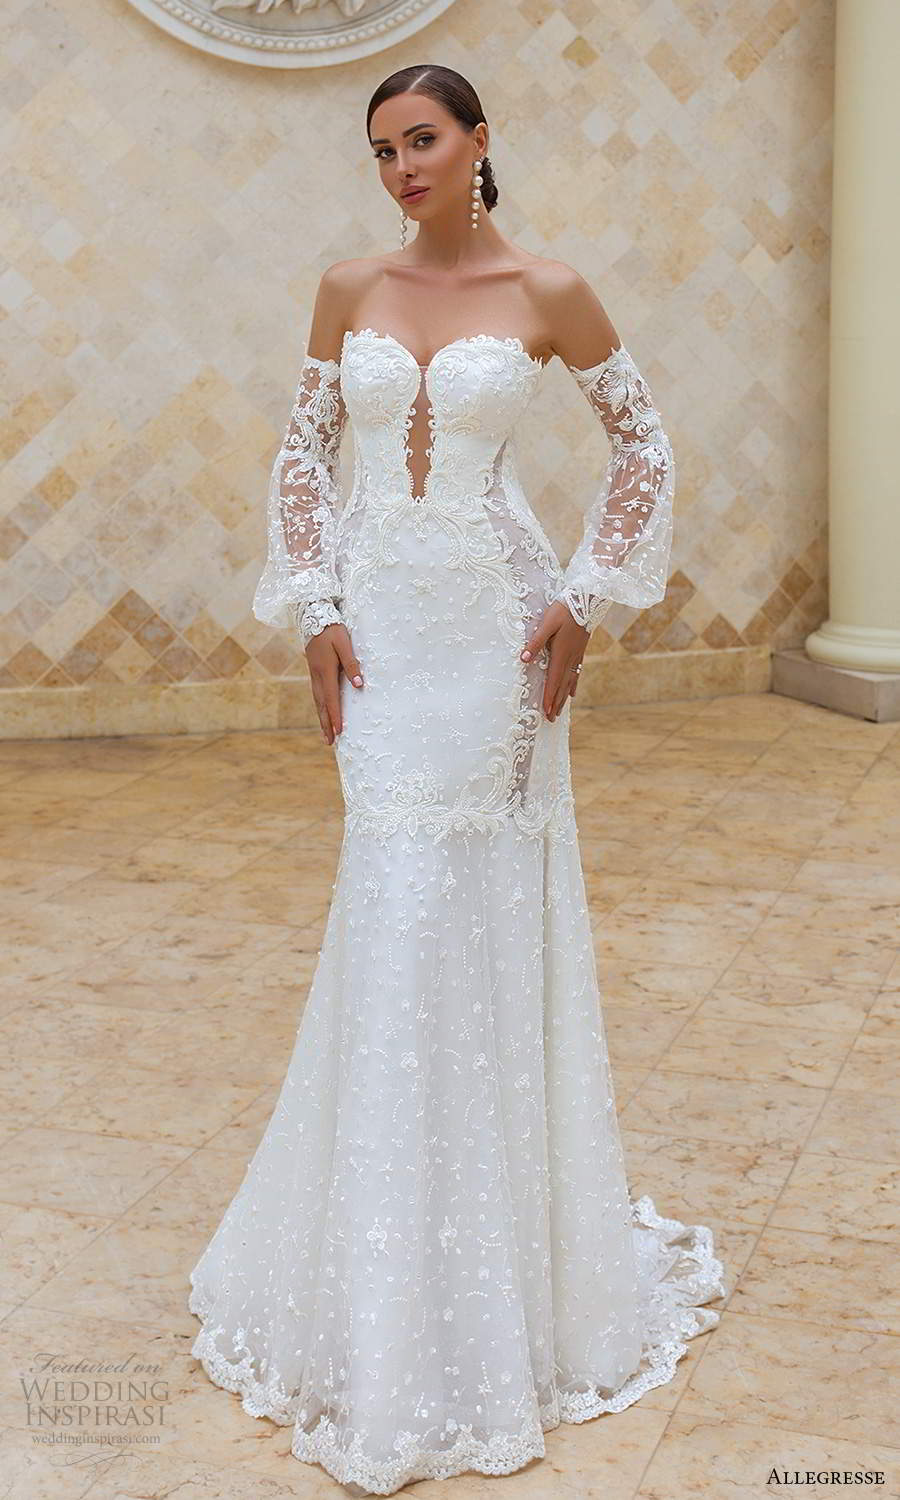 allegresse 2021 bridal detached bishop sleeves strapless plunging sweetheart neckline fully embellished fit flare mermaid wedding dress chapel train (12) mv